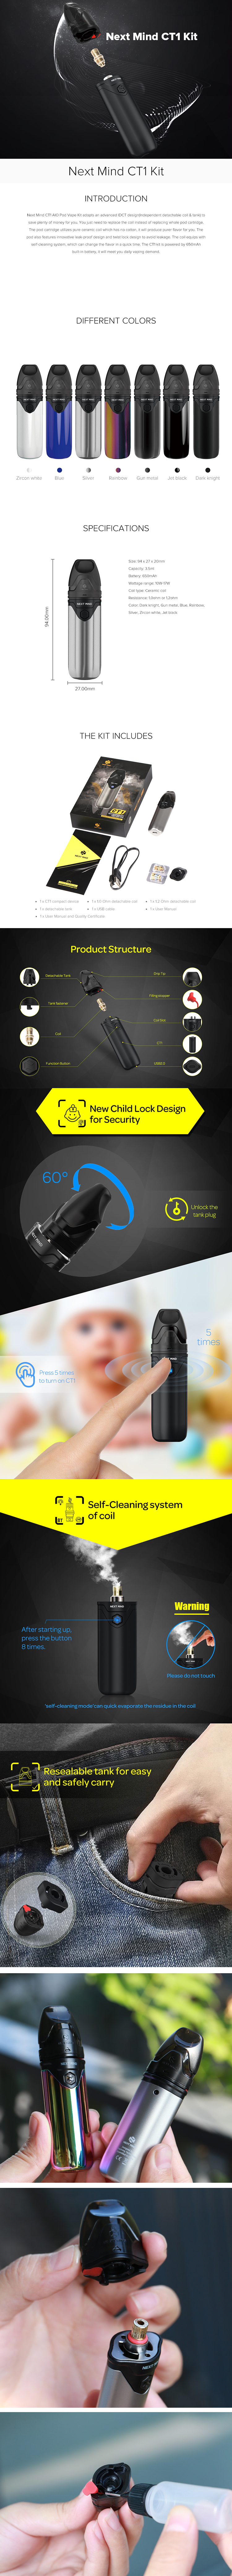 Next Mind CT1 Pod Vape Kit